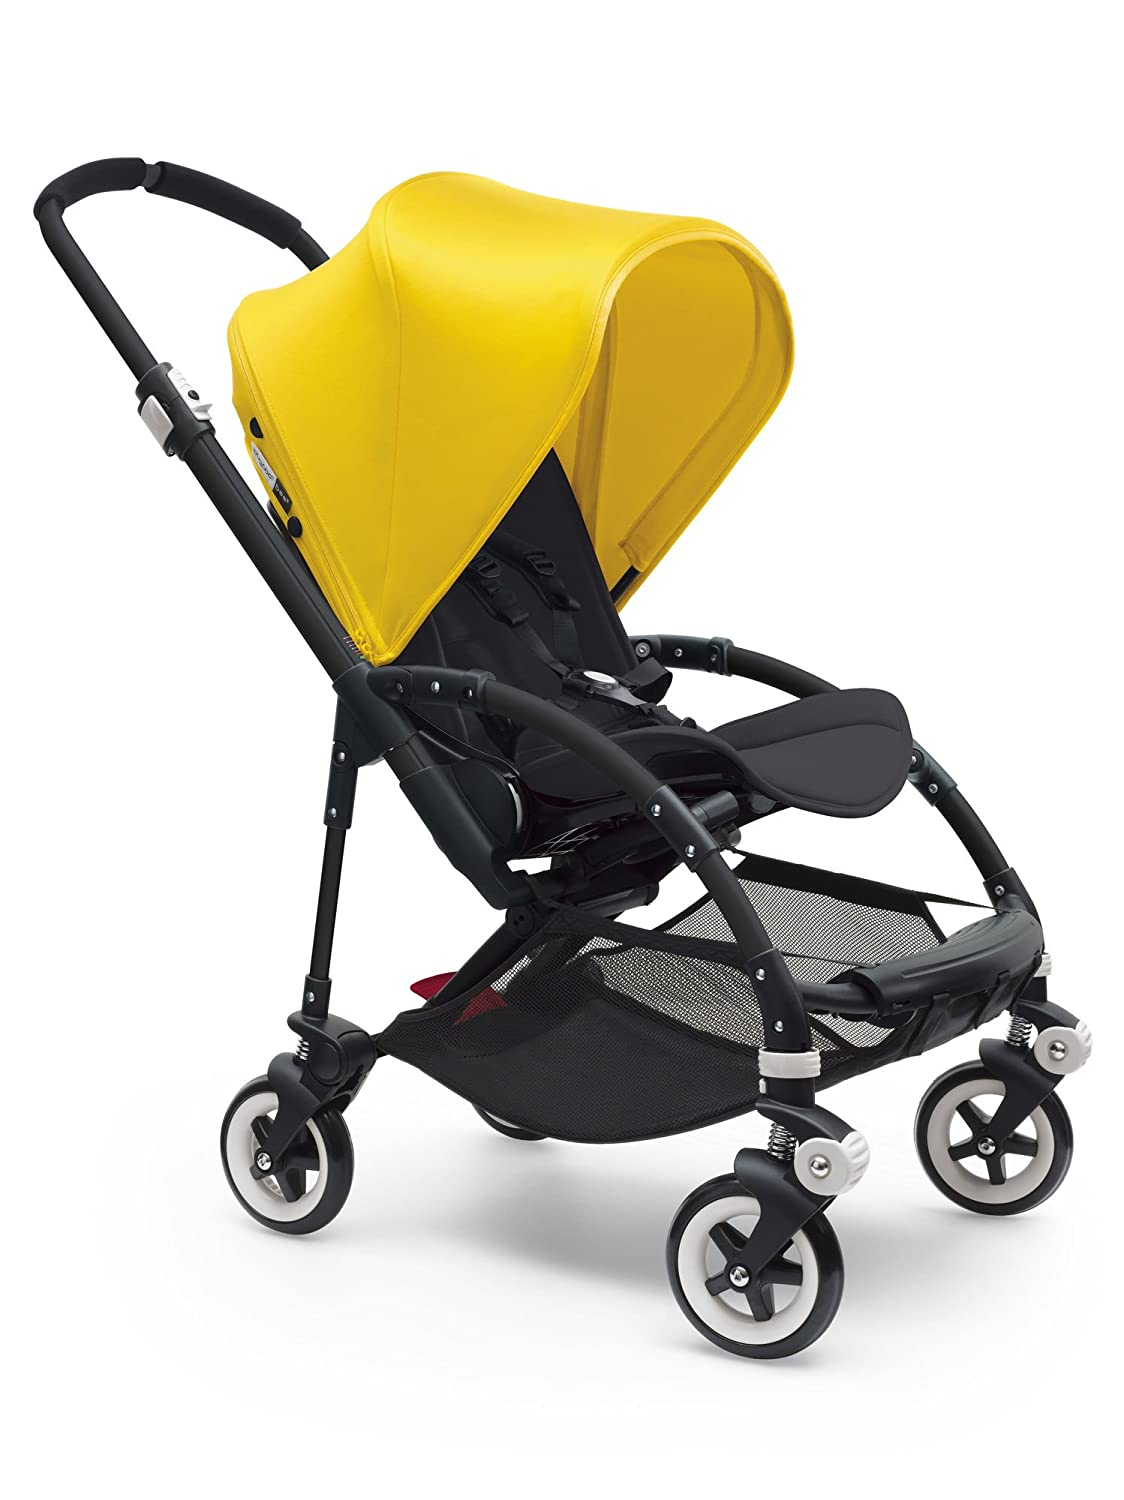 Bugaboo Bee3 Sun Canopy, Bright Yellow 500127BY01